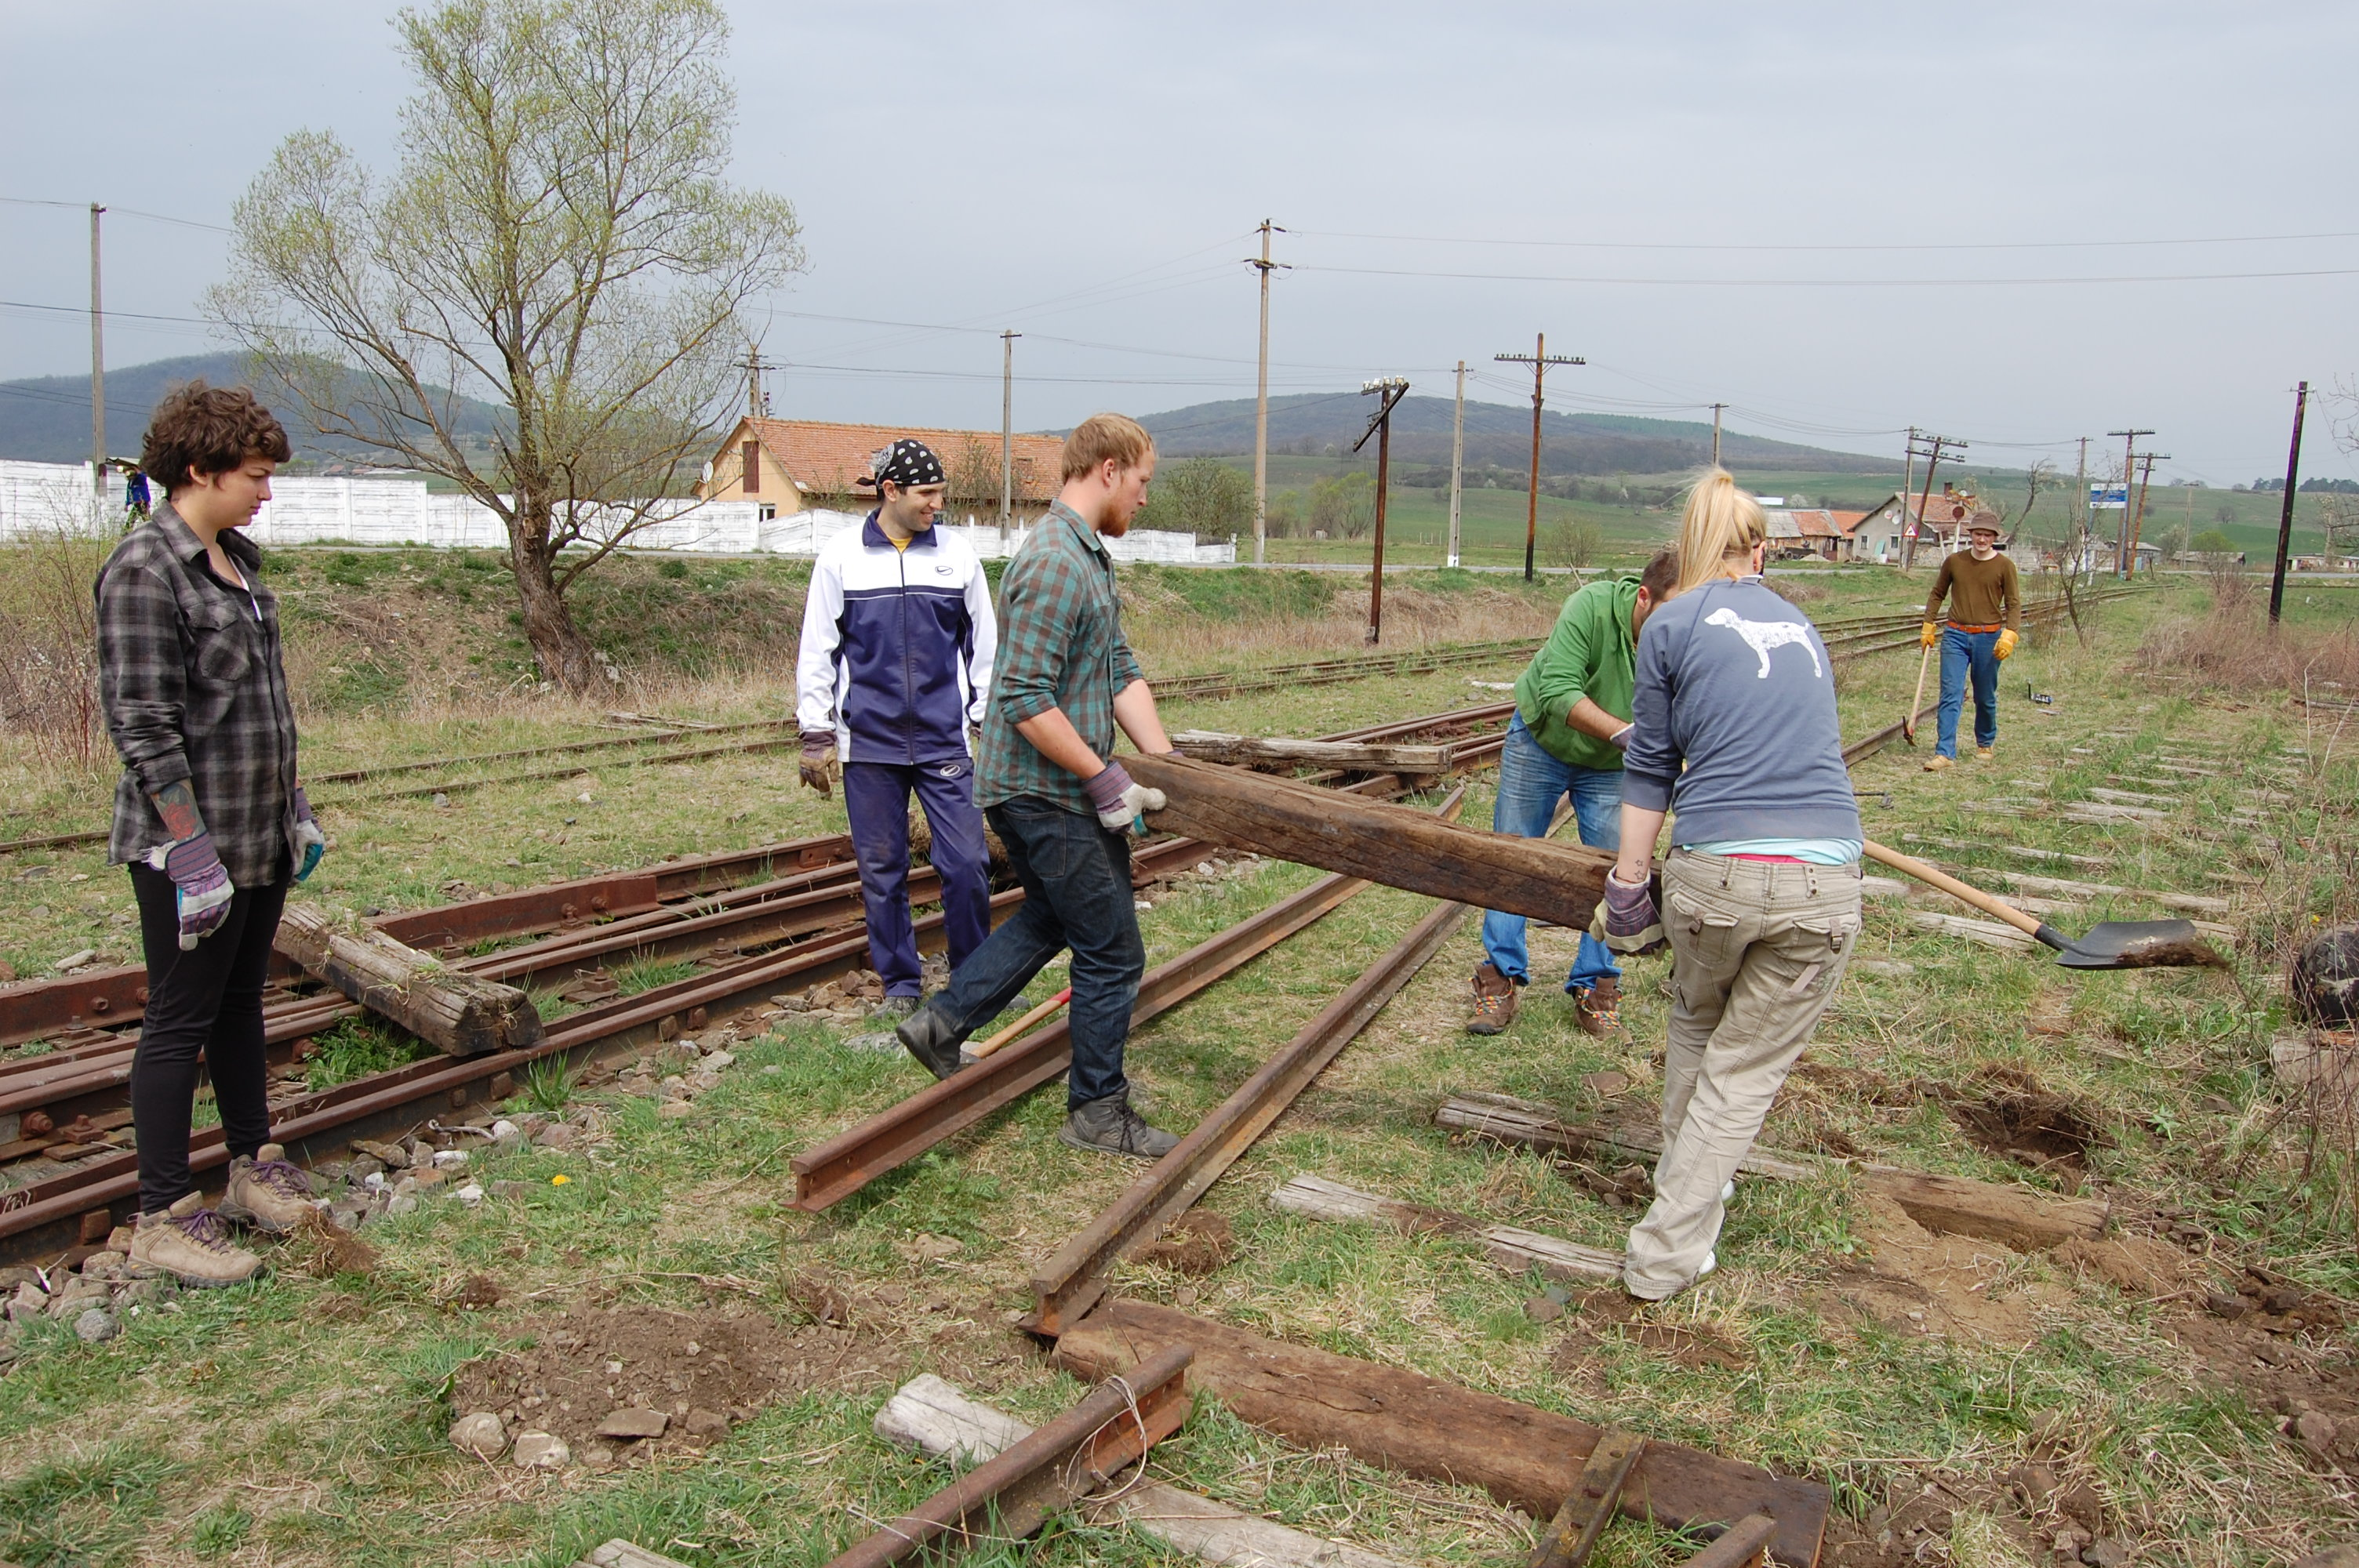 Prietenii Mocanitei: preserving and restoring the Sibiu-Agnita narrow gauge railway as a tourist attraction